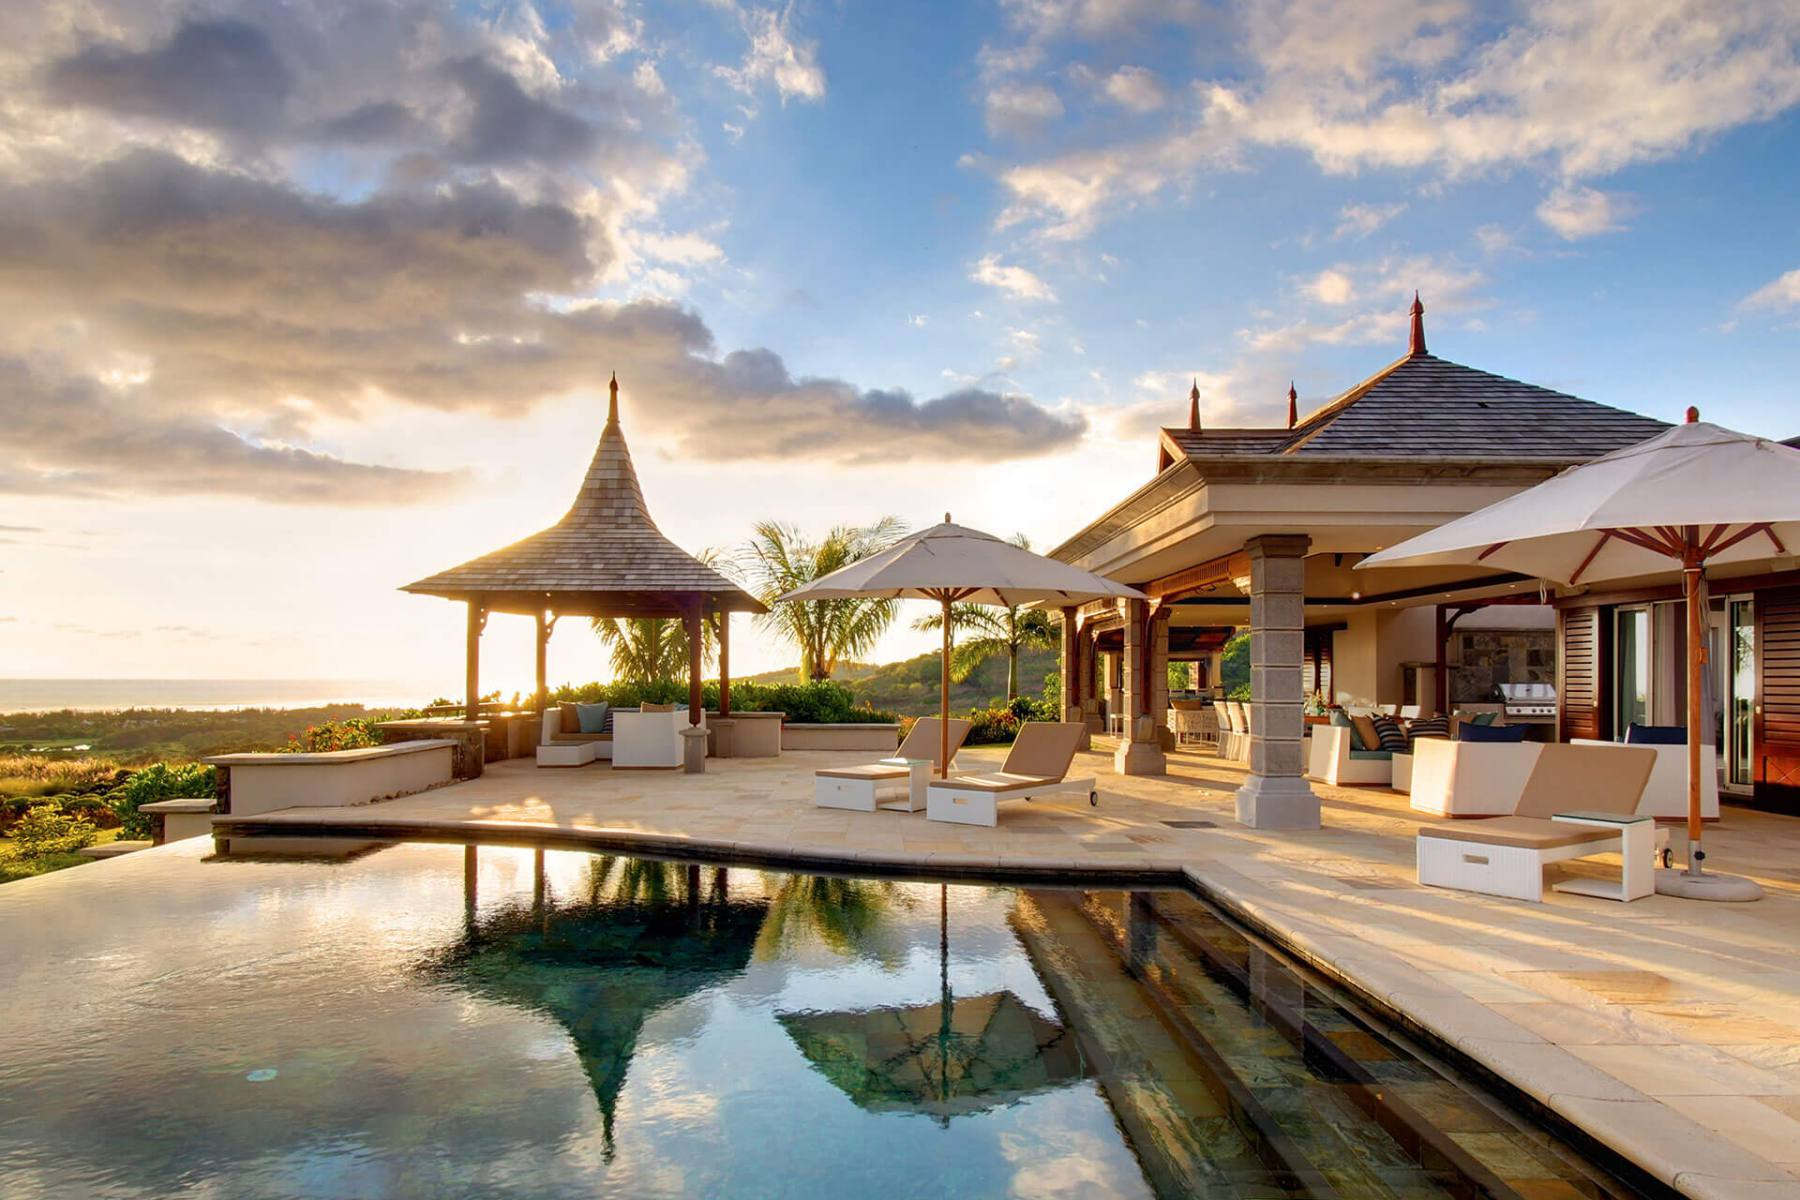 The Hideaway Club: Exclusive Access To The Most Luxurious Holiday Homes And Villas